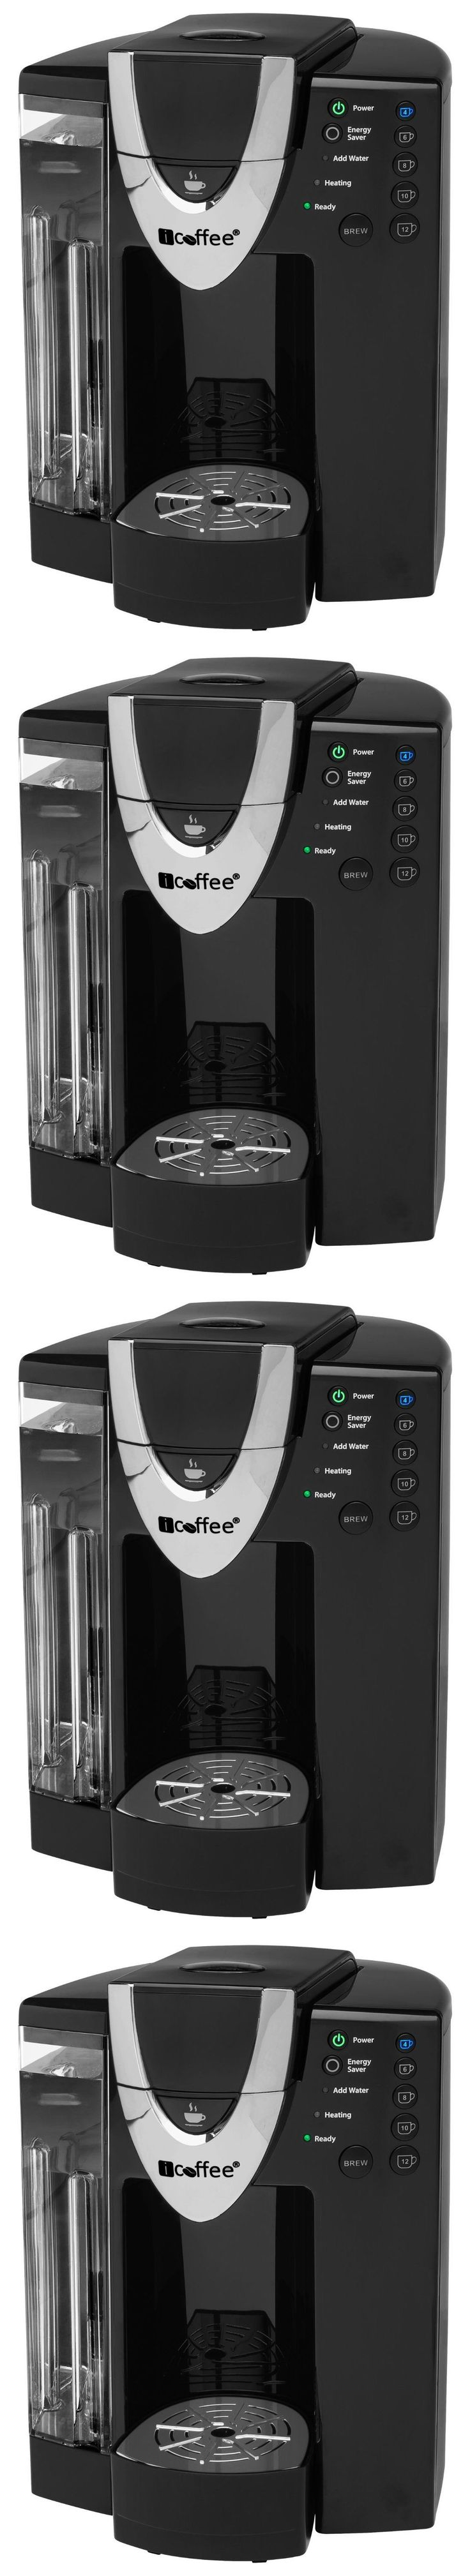 Single Serve Brewers 156775: Icoffee Rss300-Dav Single Serve Coffee Brewer W Spin Brew Technology Black New -> BUY IT NOW ONLY: $81.79 on eBay!